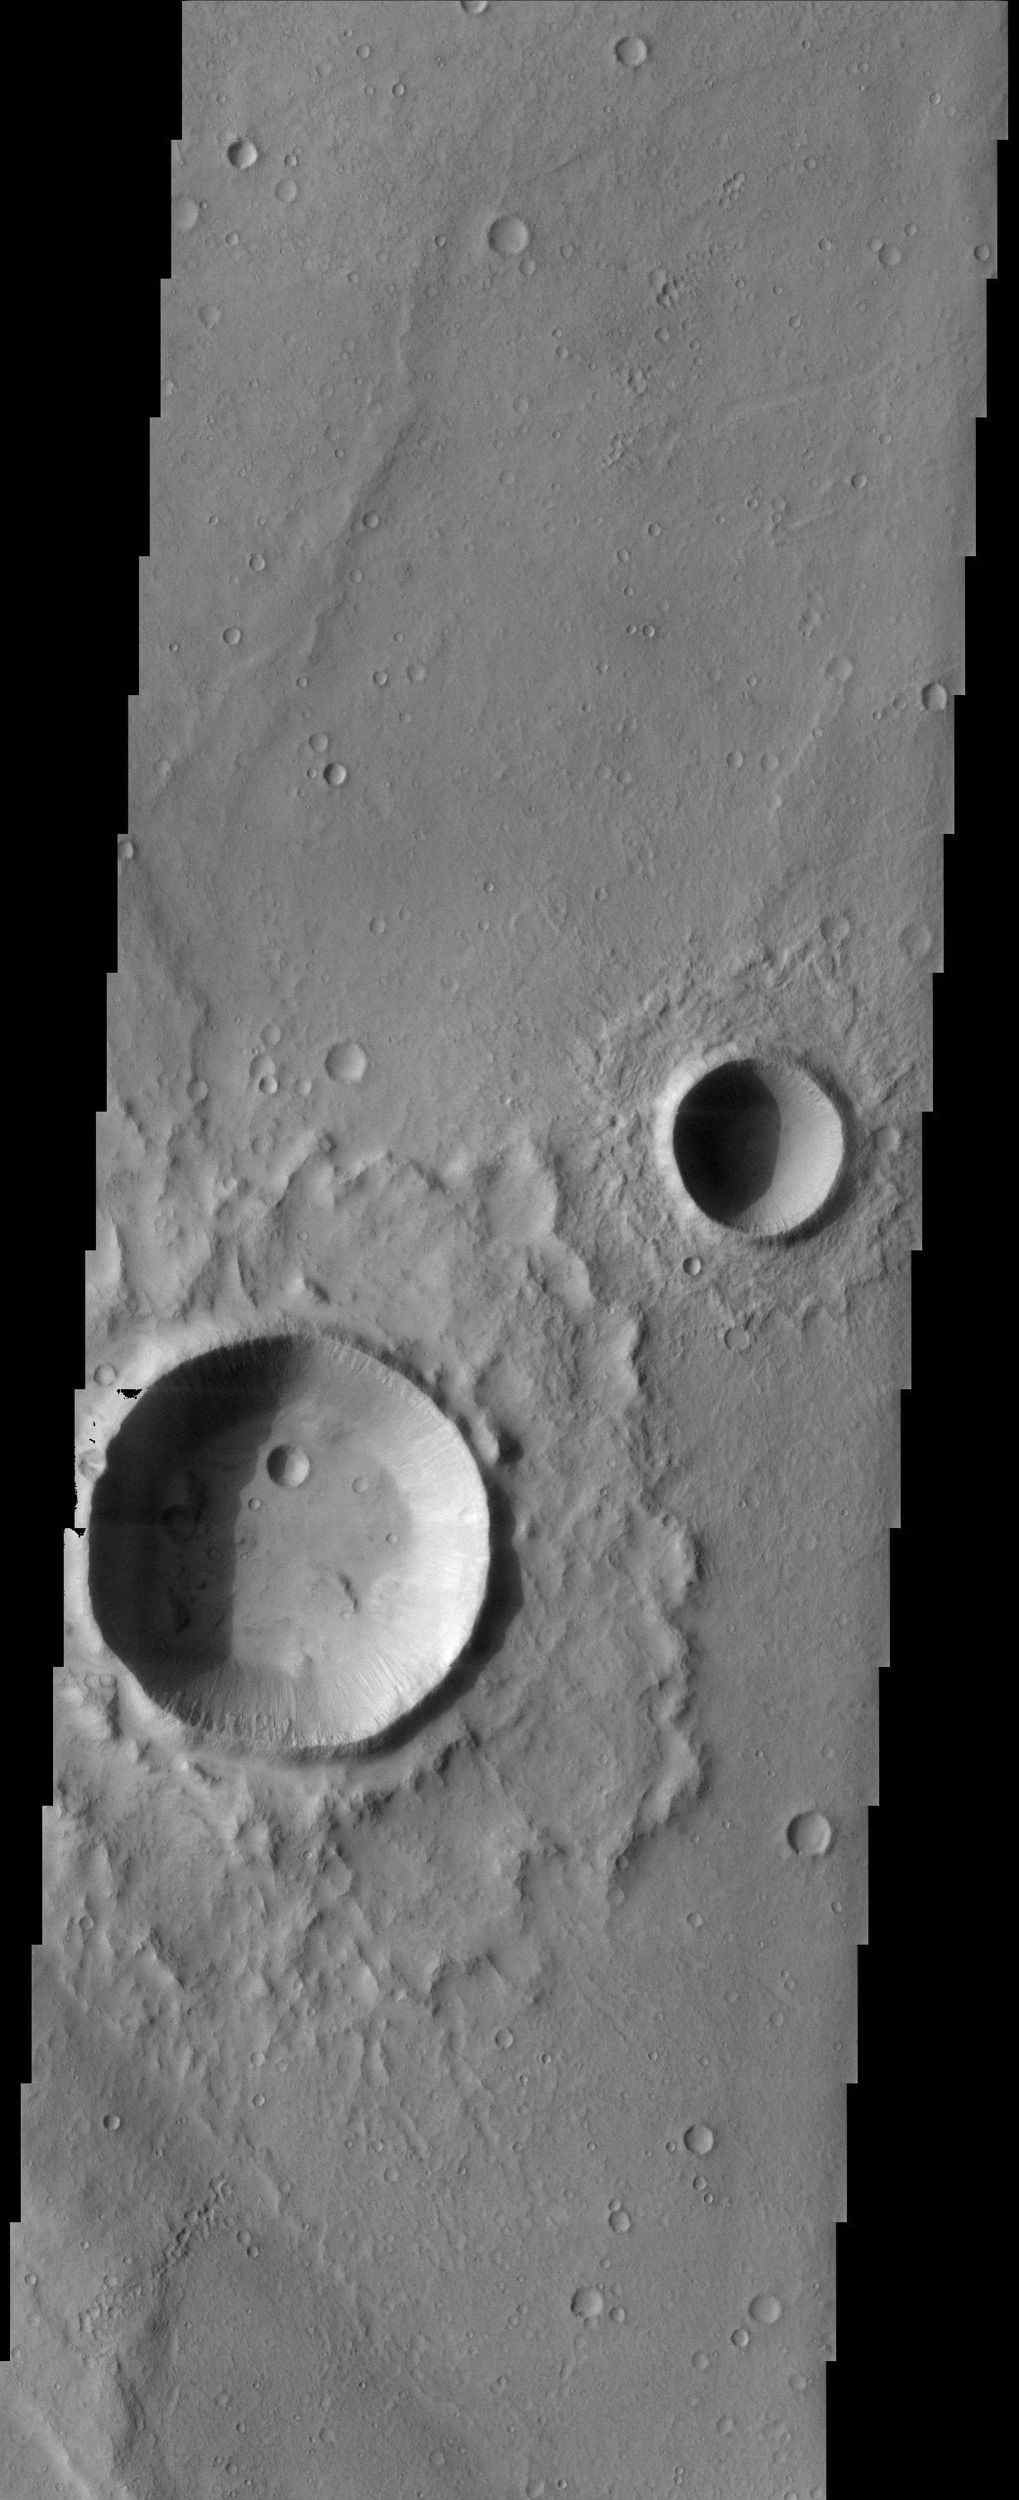 The fluidized impact crater ejecta and flat crater floors observed in this image from NASA's Mars Odyssey spacecraft suggest near-surface volatiles once played an important role in modifying the Martian surface.